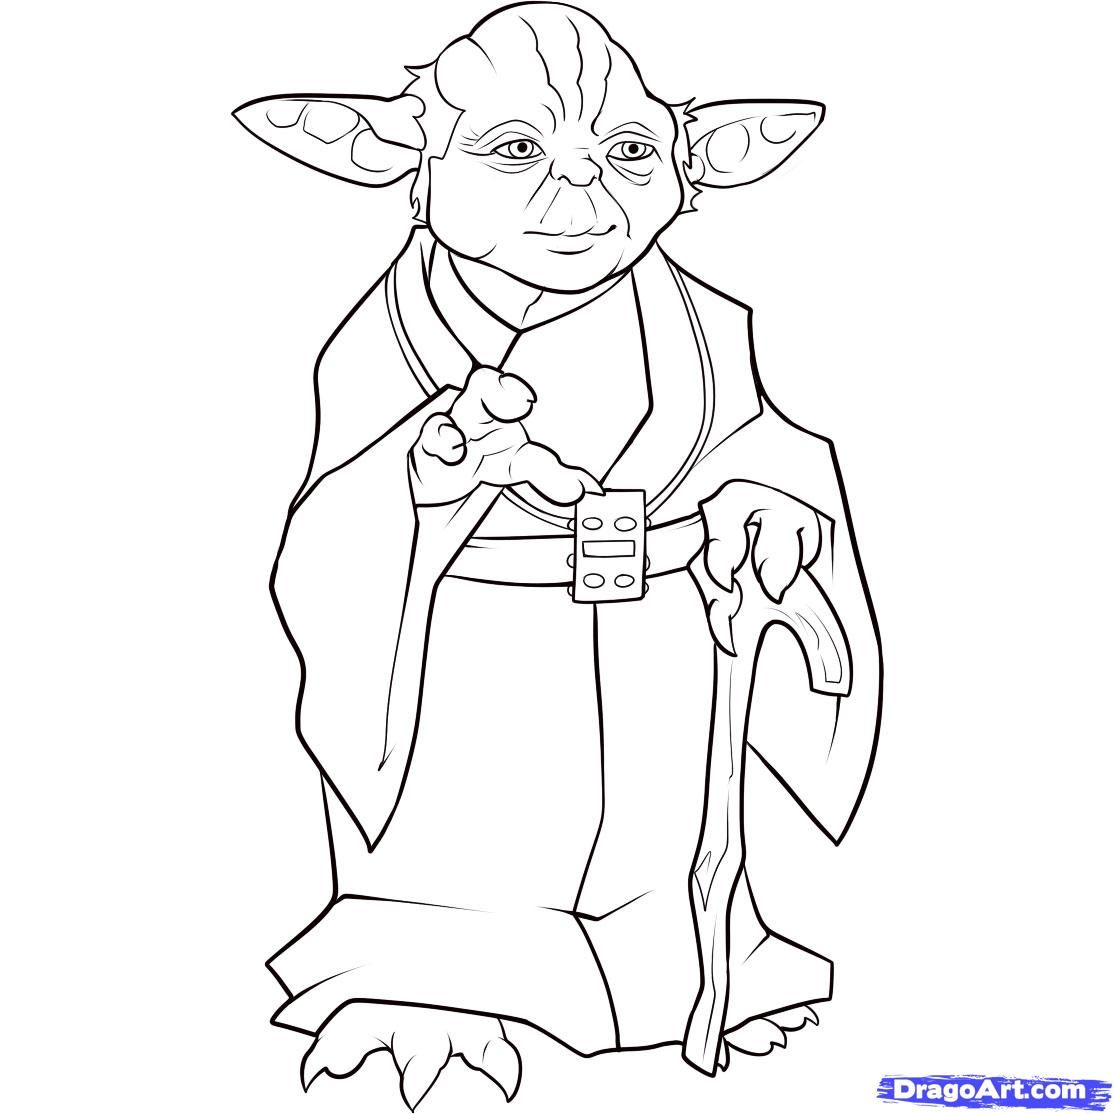 Yoda coloring page party ideas